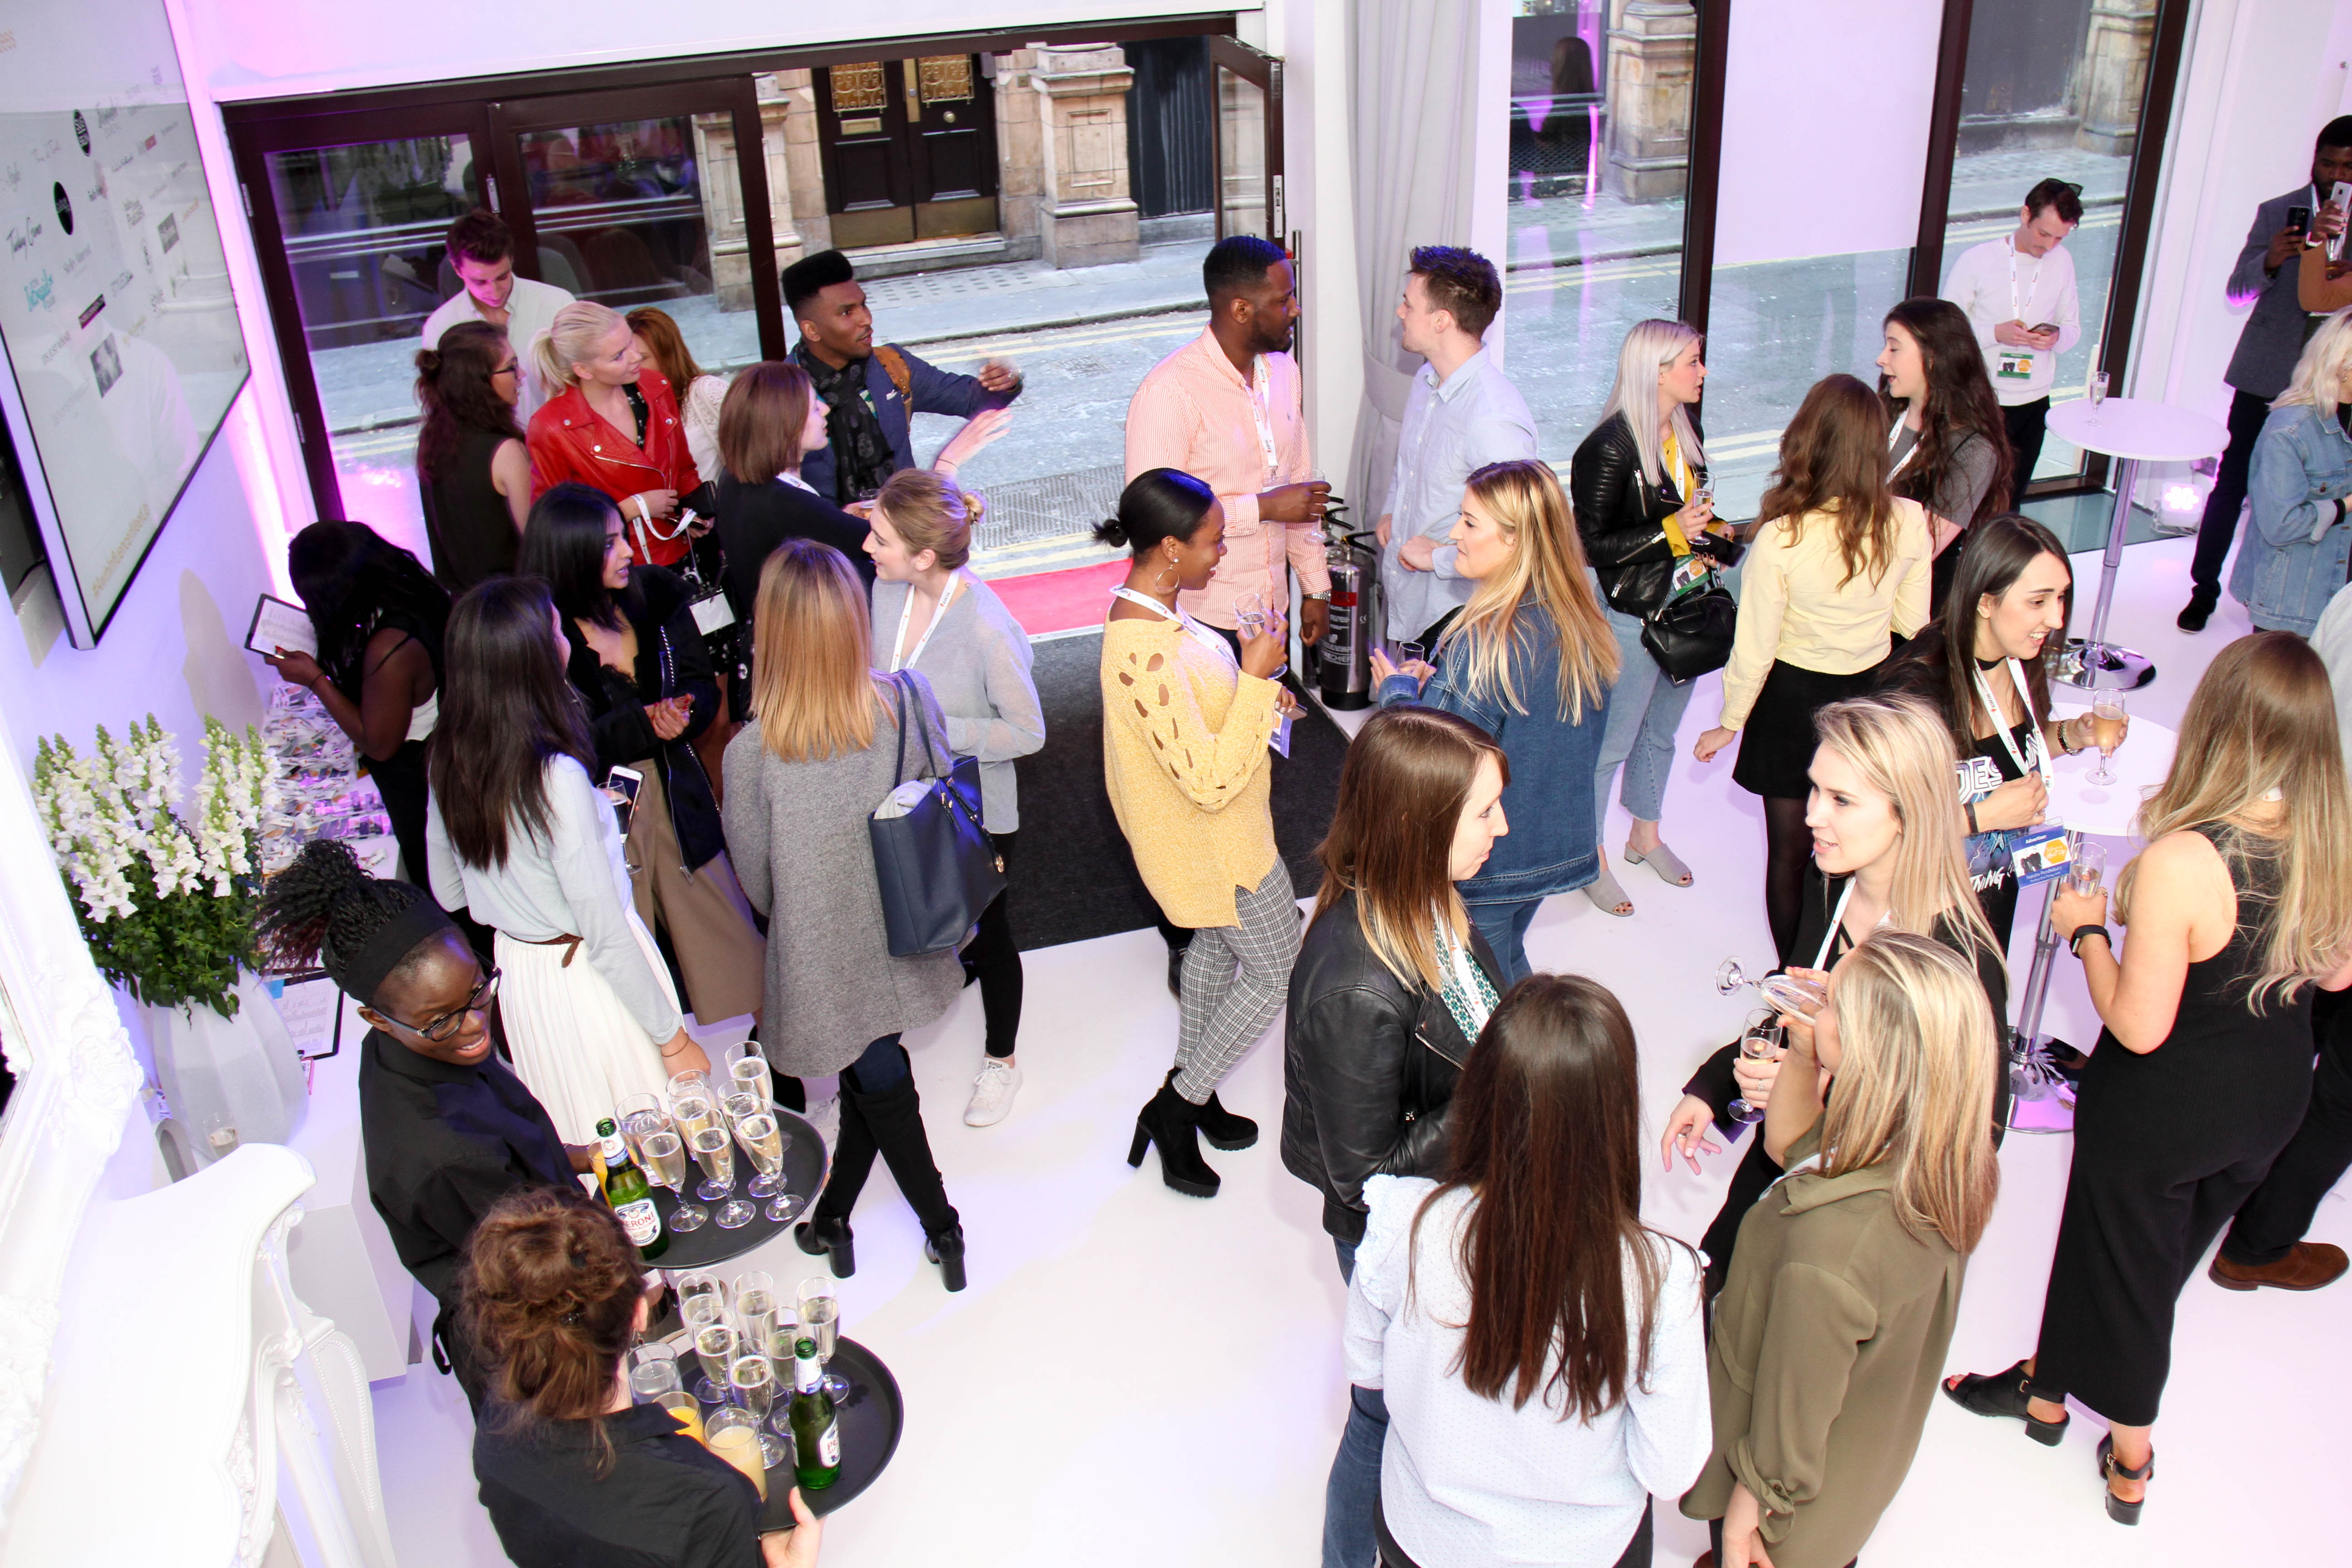 A photo of guests networking at the ICETANK event.